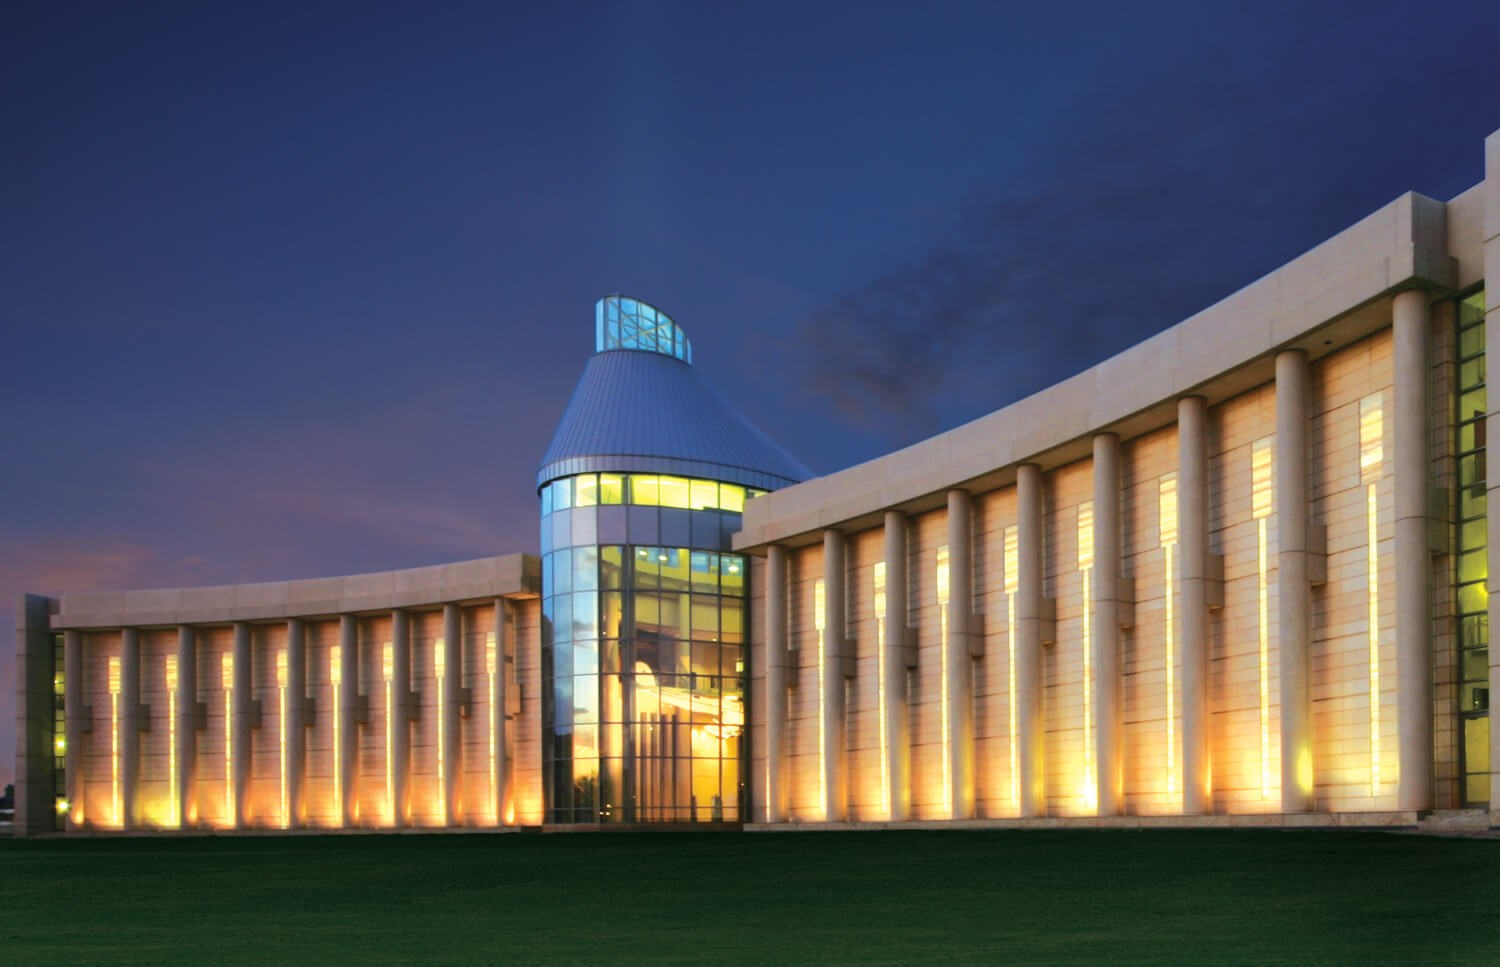 Image of Oklahoma History Center